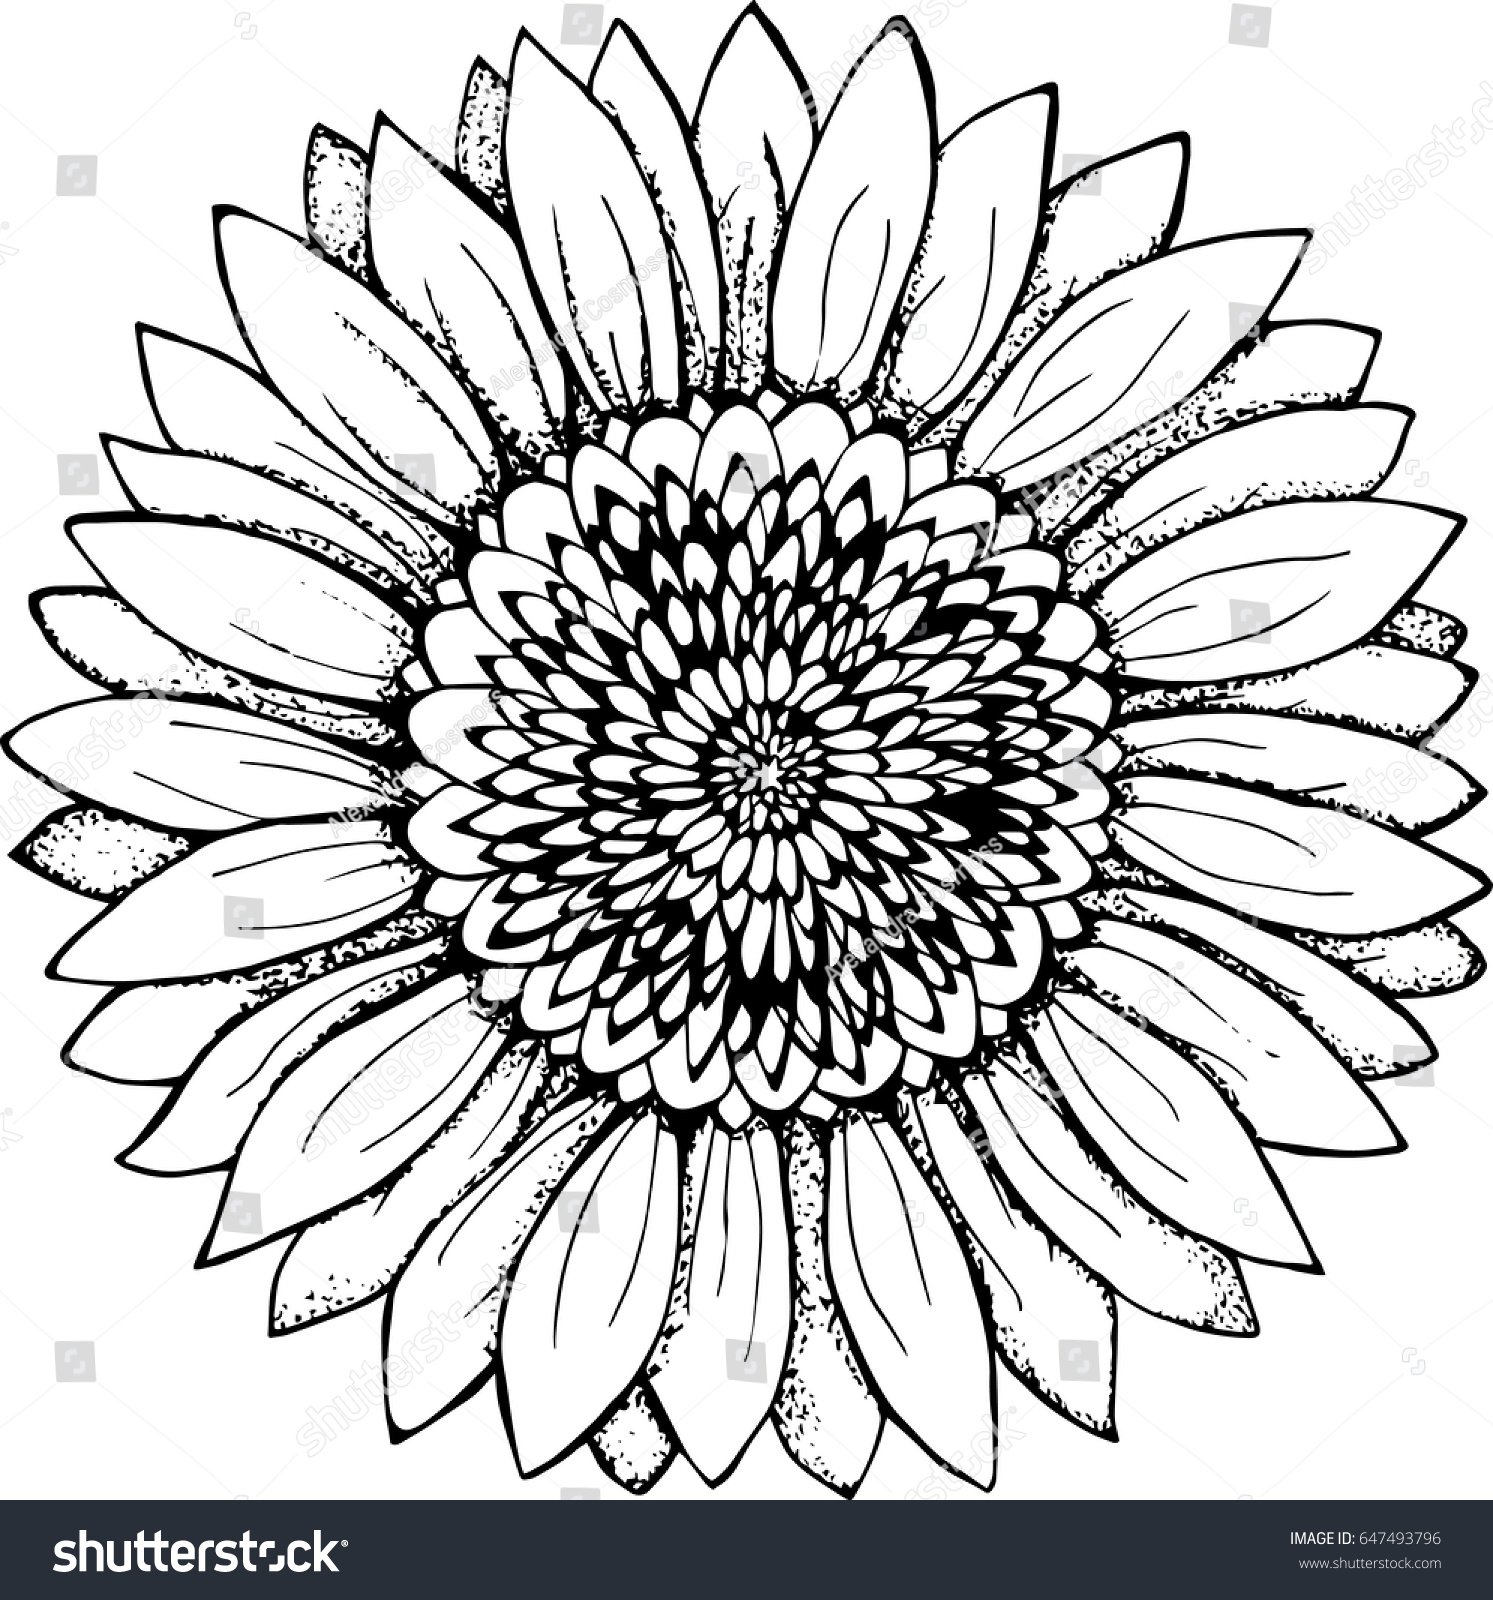 Black White Picture Sunflower Flower Illustration Stock Vector